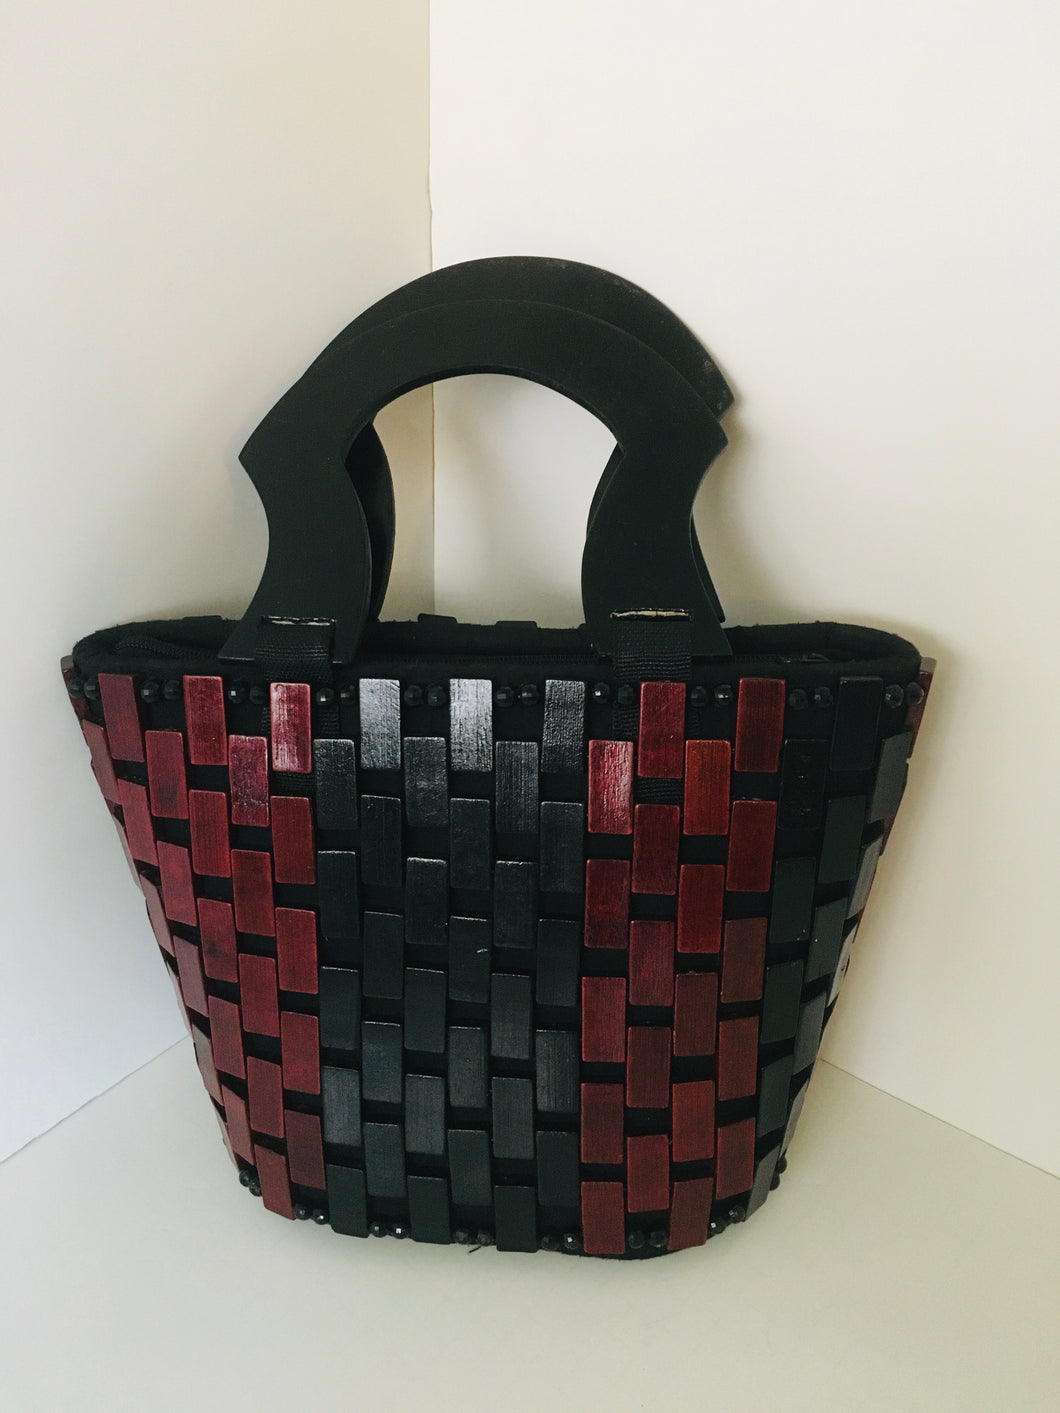 Coffee Brown and Black HandCrafted Handbag made out of wooden materials.